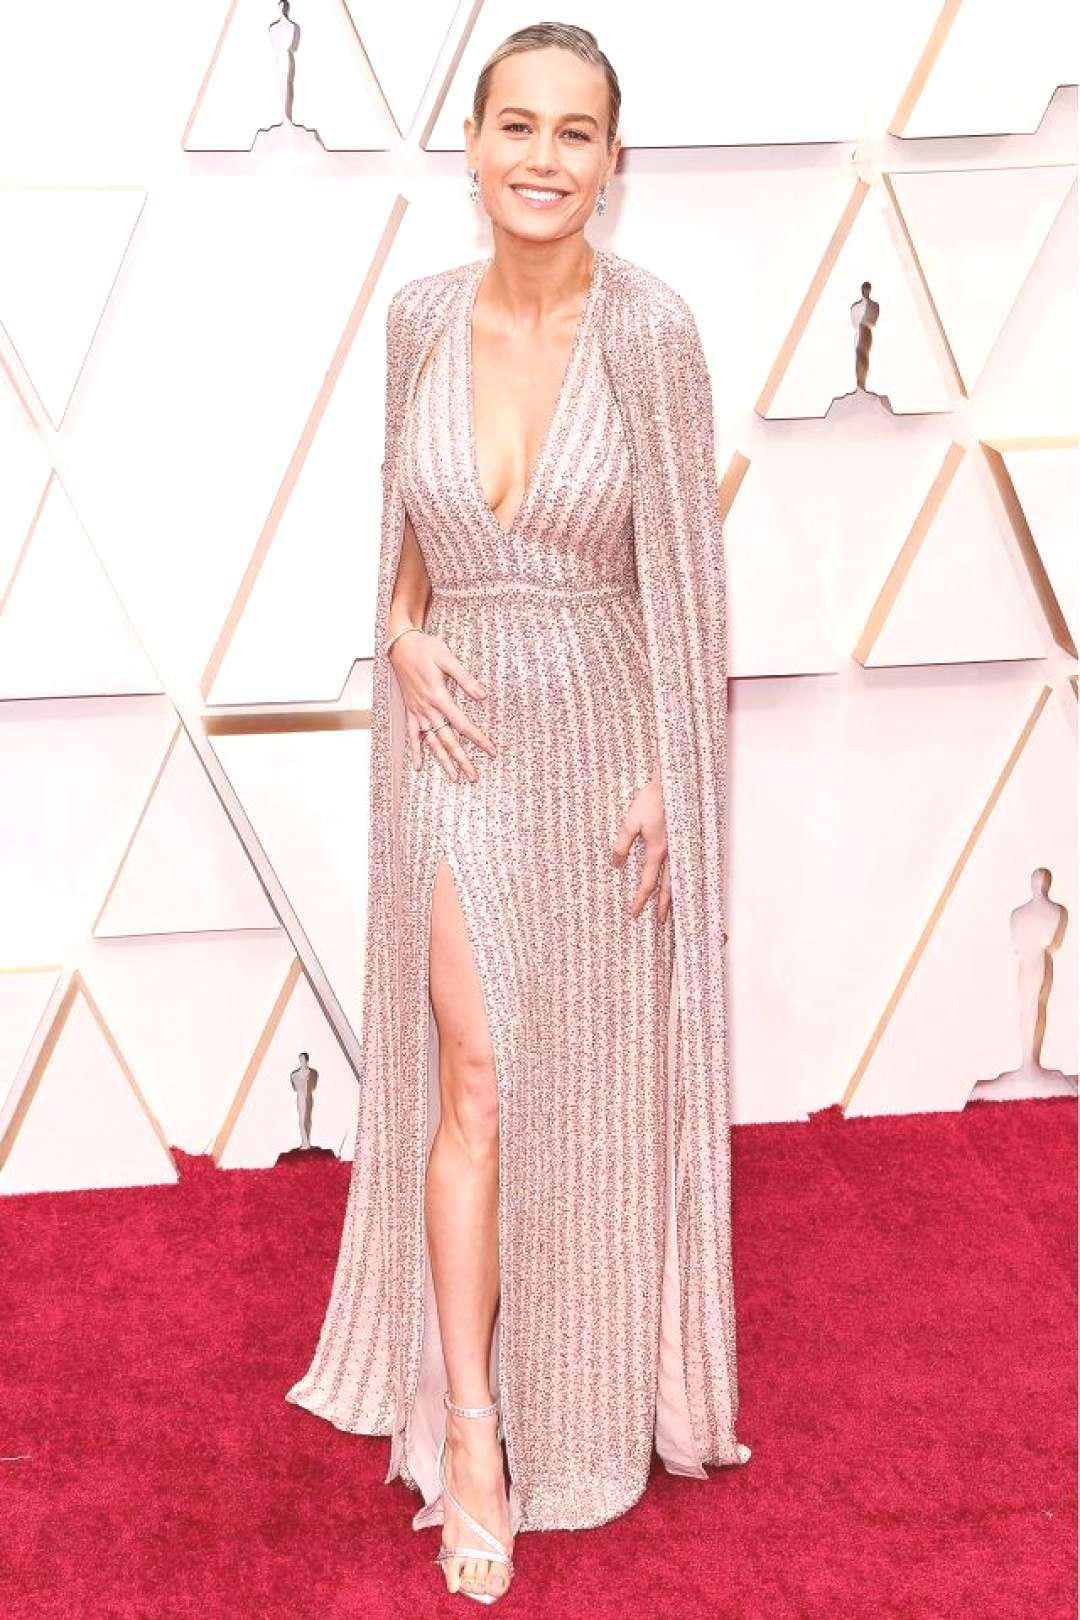 Brie Larson at the 2020 Oscars Brie Larson at the 2020 Oscars